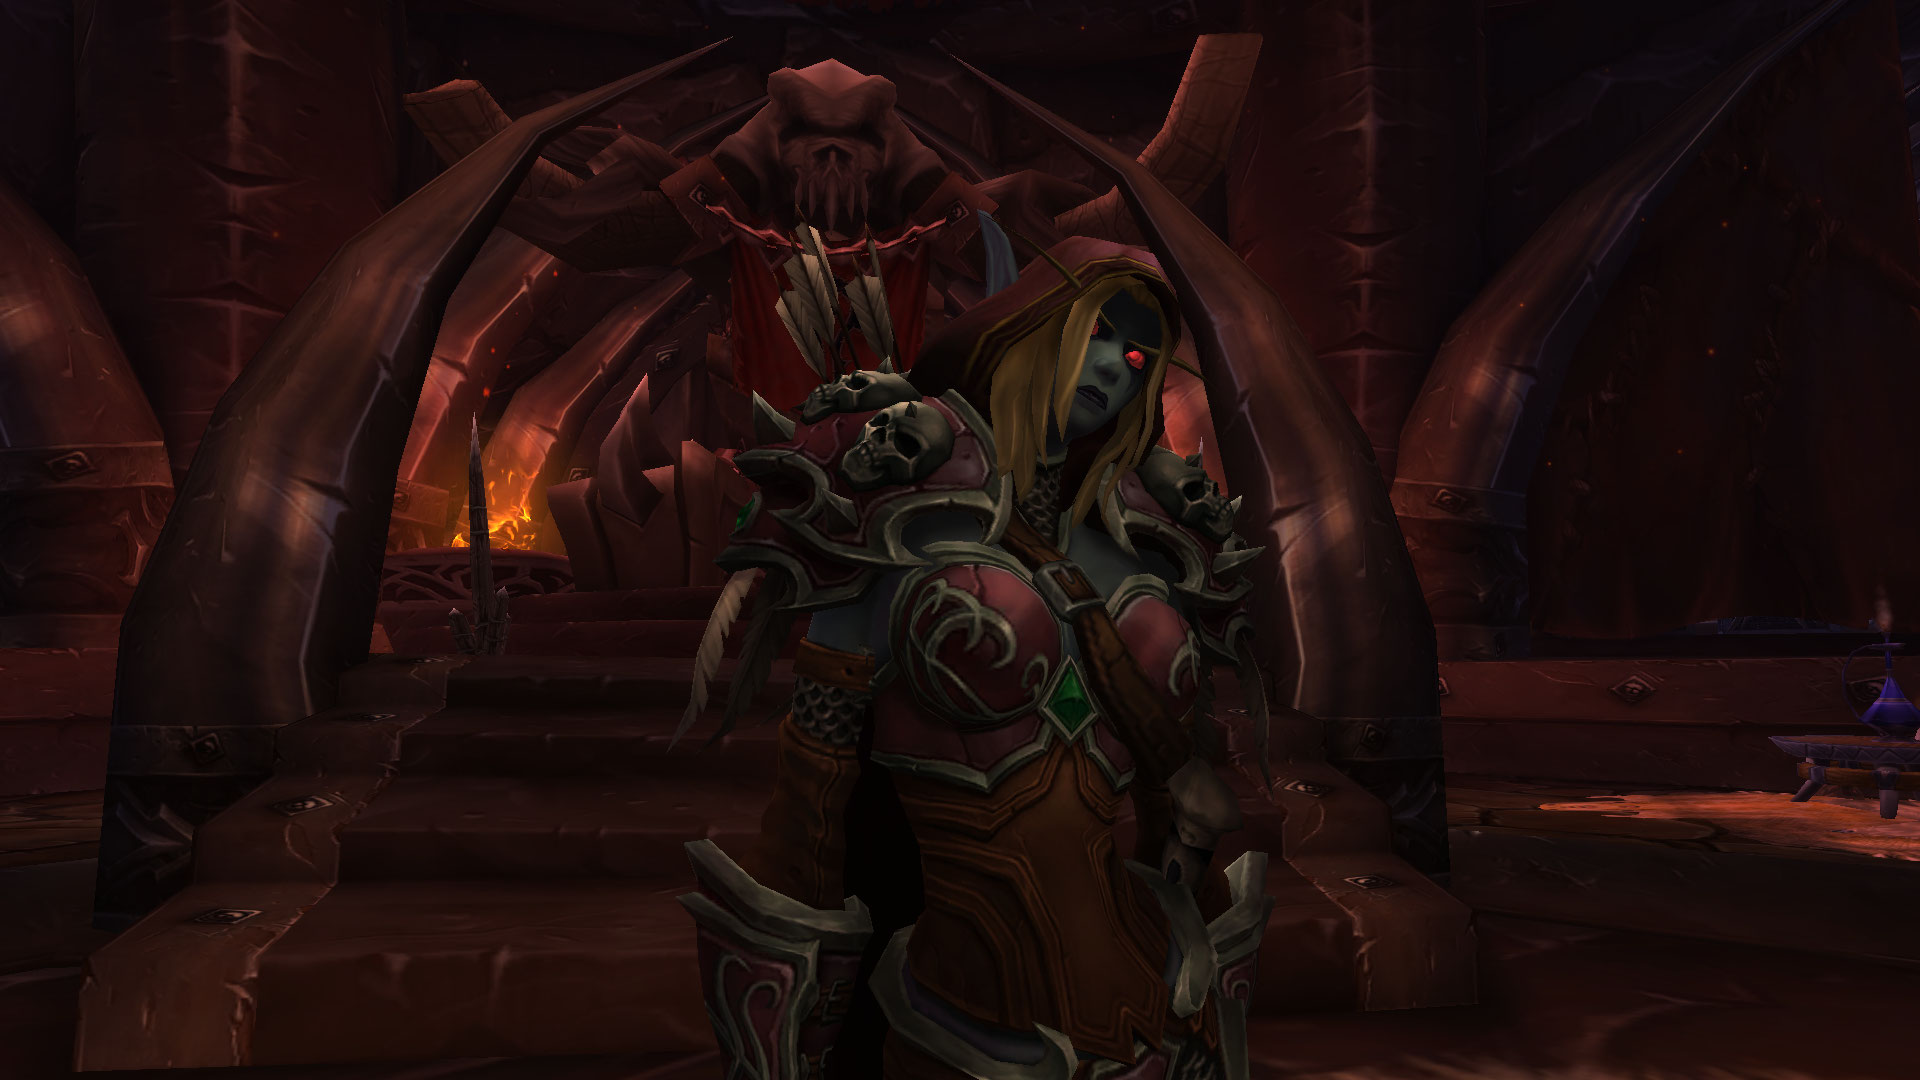 For The What Battle For Azeroth S Call To Arms Isn T Working For